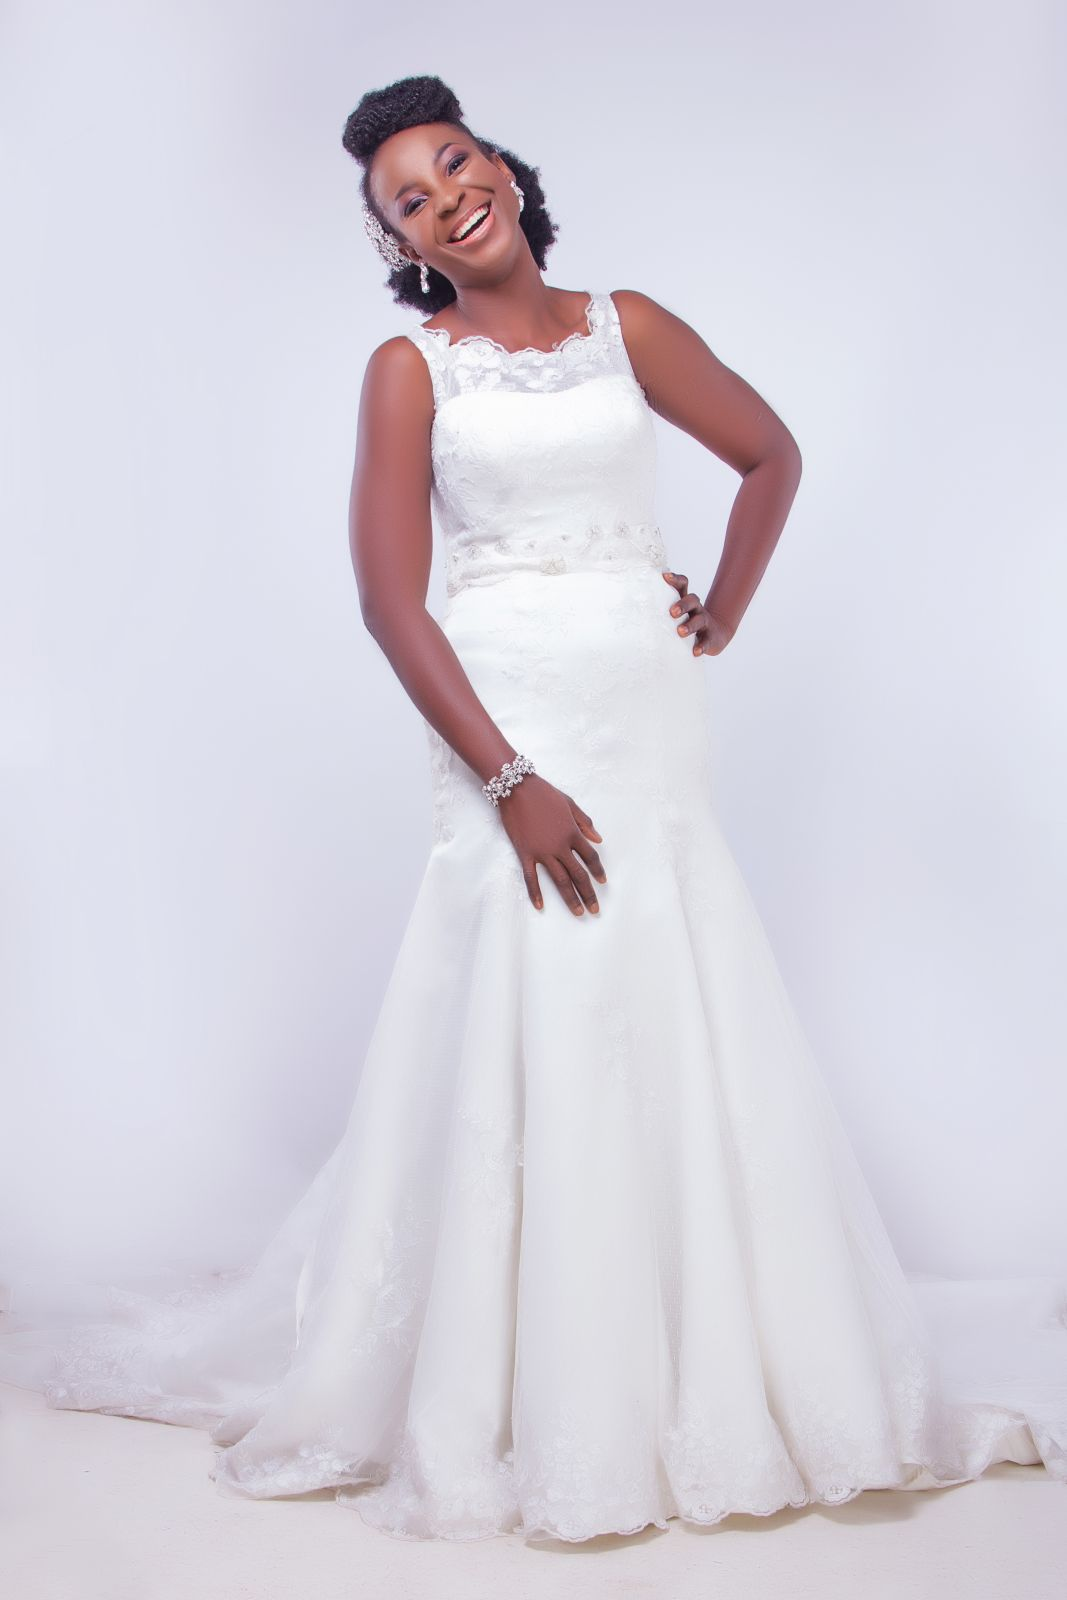 Natural Hair Bridal Inspiration - Yes I Do - BellaNaija Weddings 2015 005